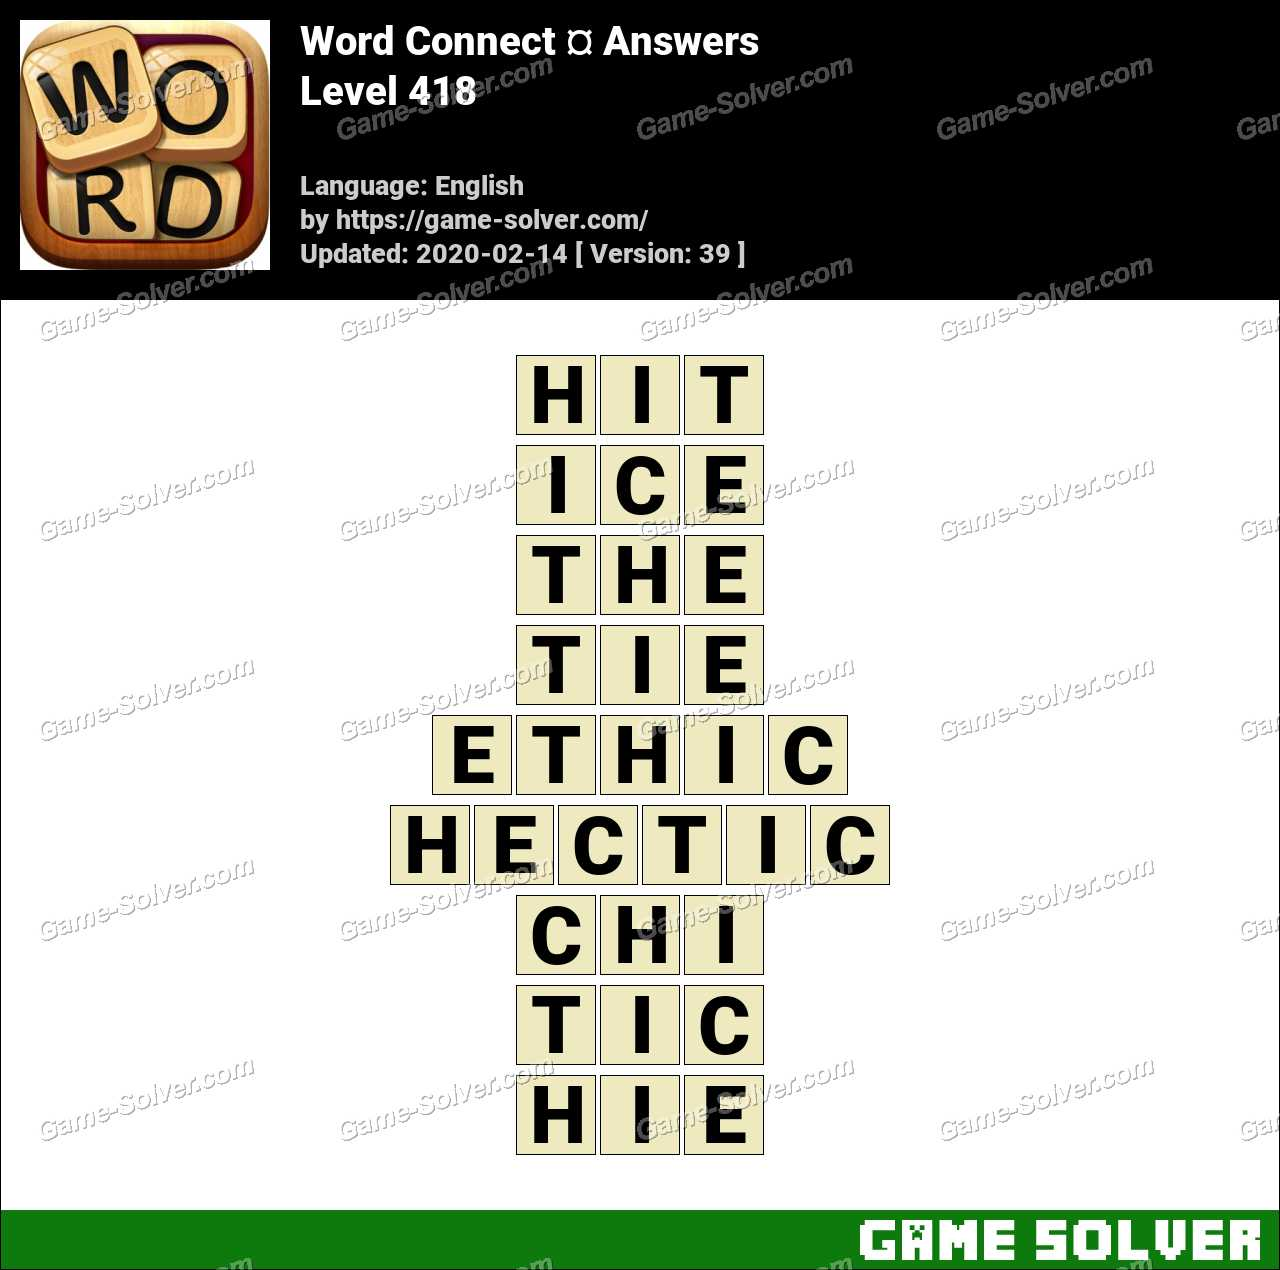 Word Connect Level 418 Answers